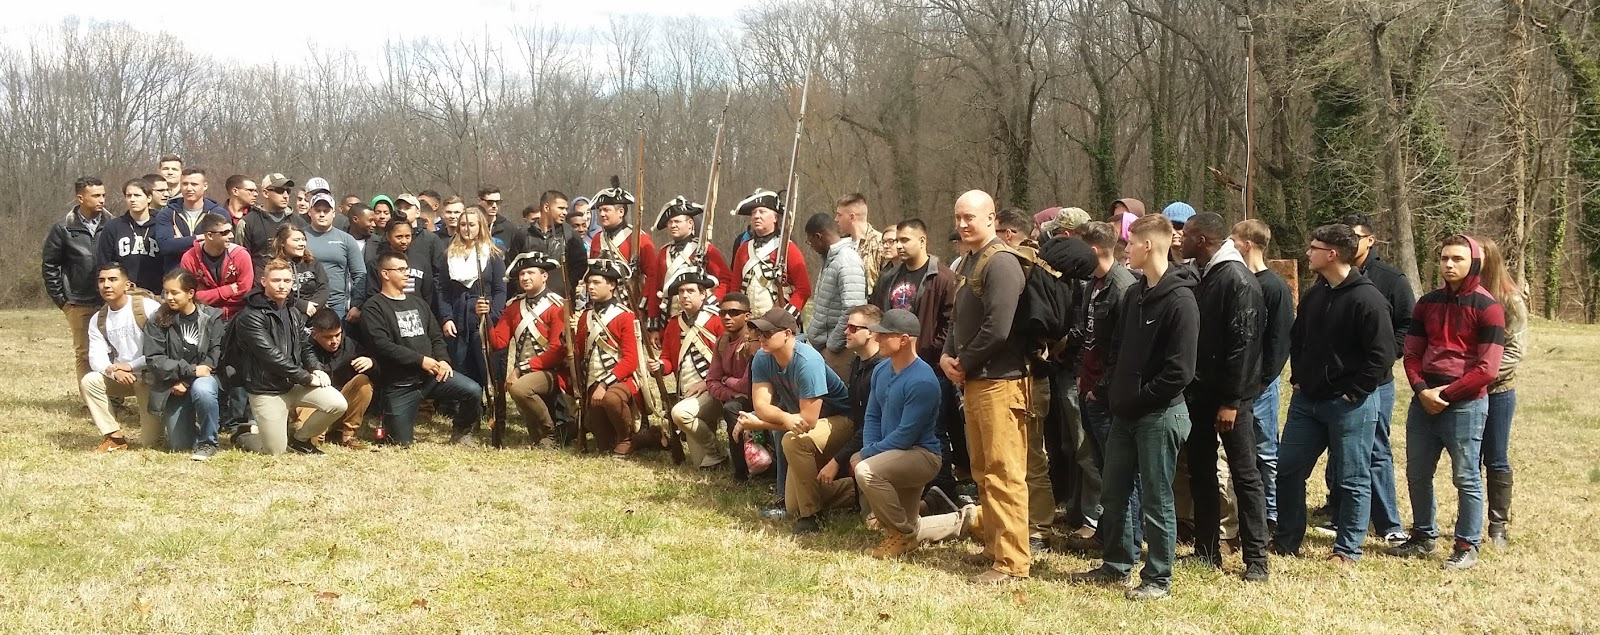 Marine Corps Gazette Blog: The Battle of Guilford Courthouse: